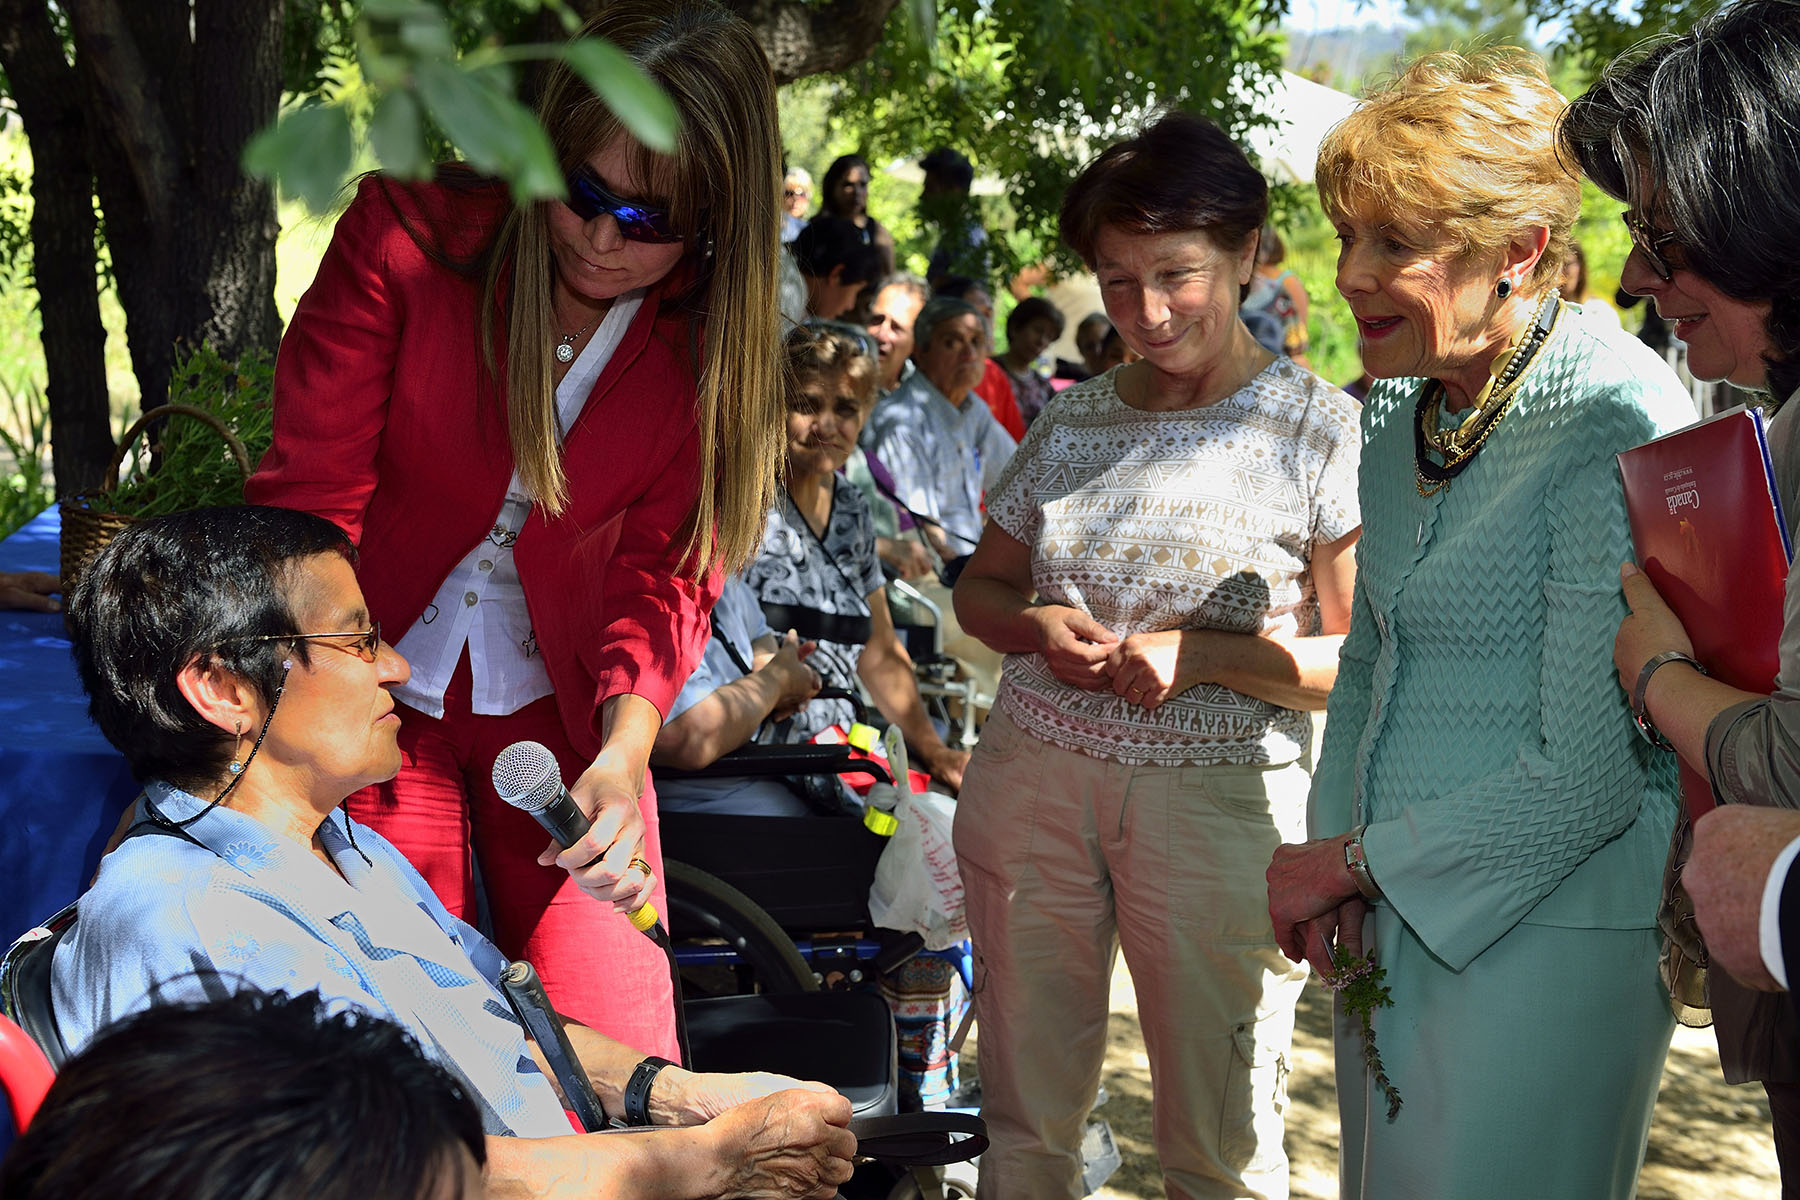 Joined by Mr. Dávalos Bachelet, Her Excellency visited Fondacio, a non-governmental organization that uses occupational and horticultural therapy to help people with physical and mental disabilities live independent, fulfilling lives.